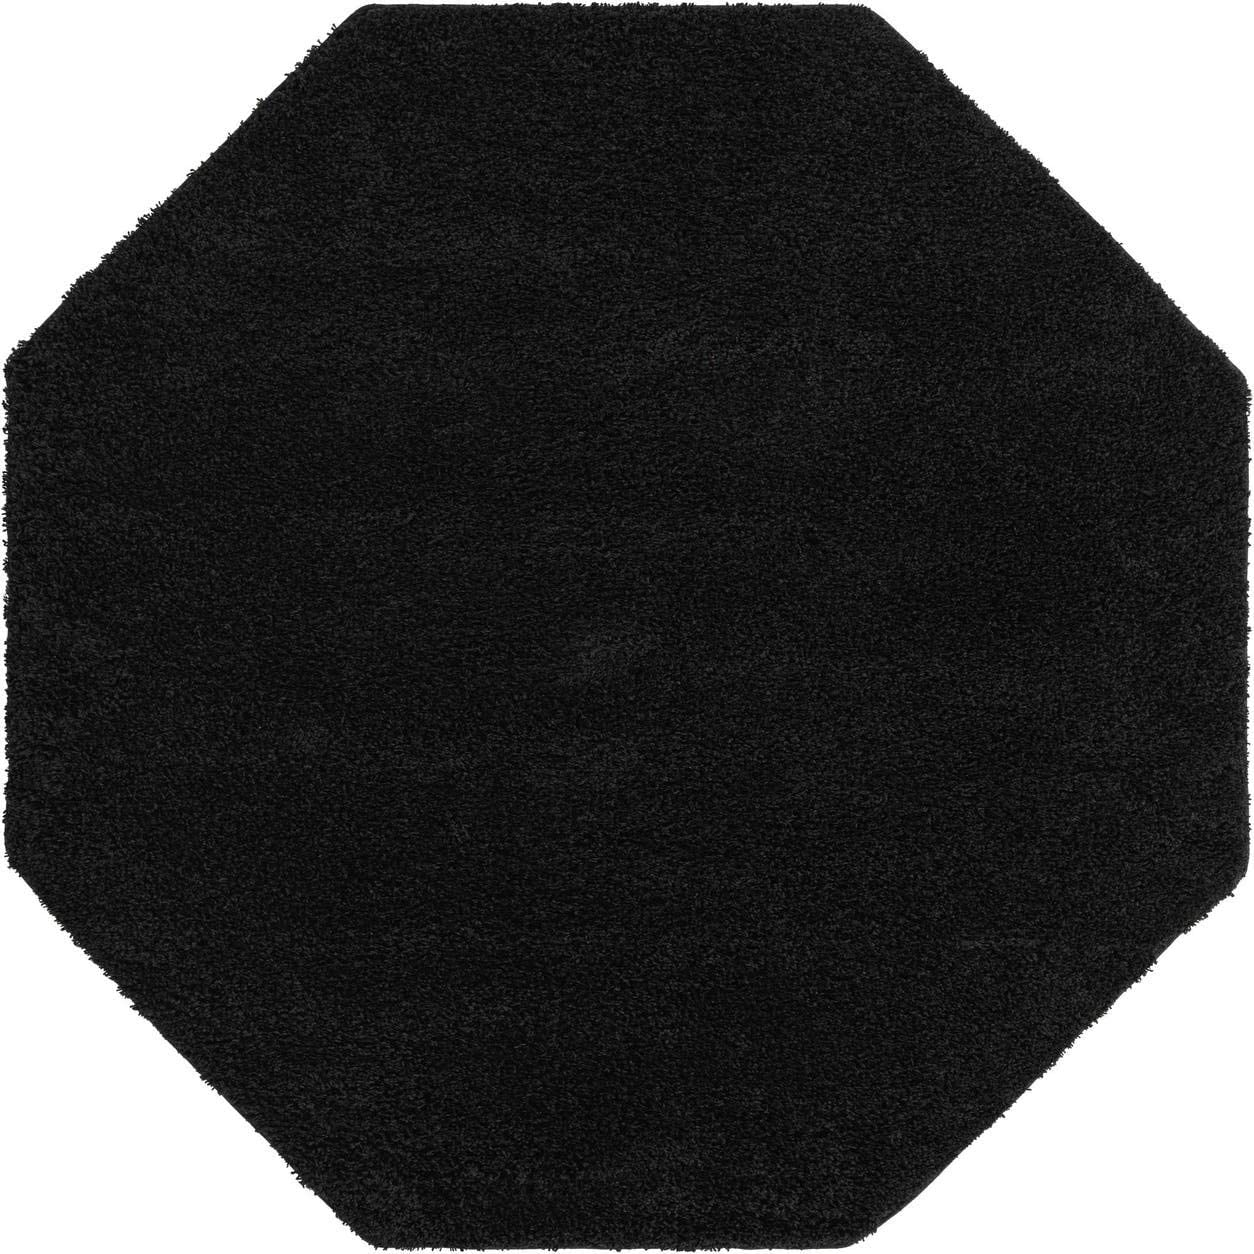 Rugs.com Everyday Shag Rug – Black 8 Ft Octagon Shag Rug Perfect for Living Rooms, Kitchens, Dining Areas and More